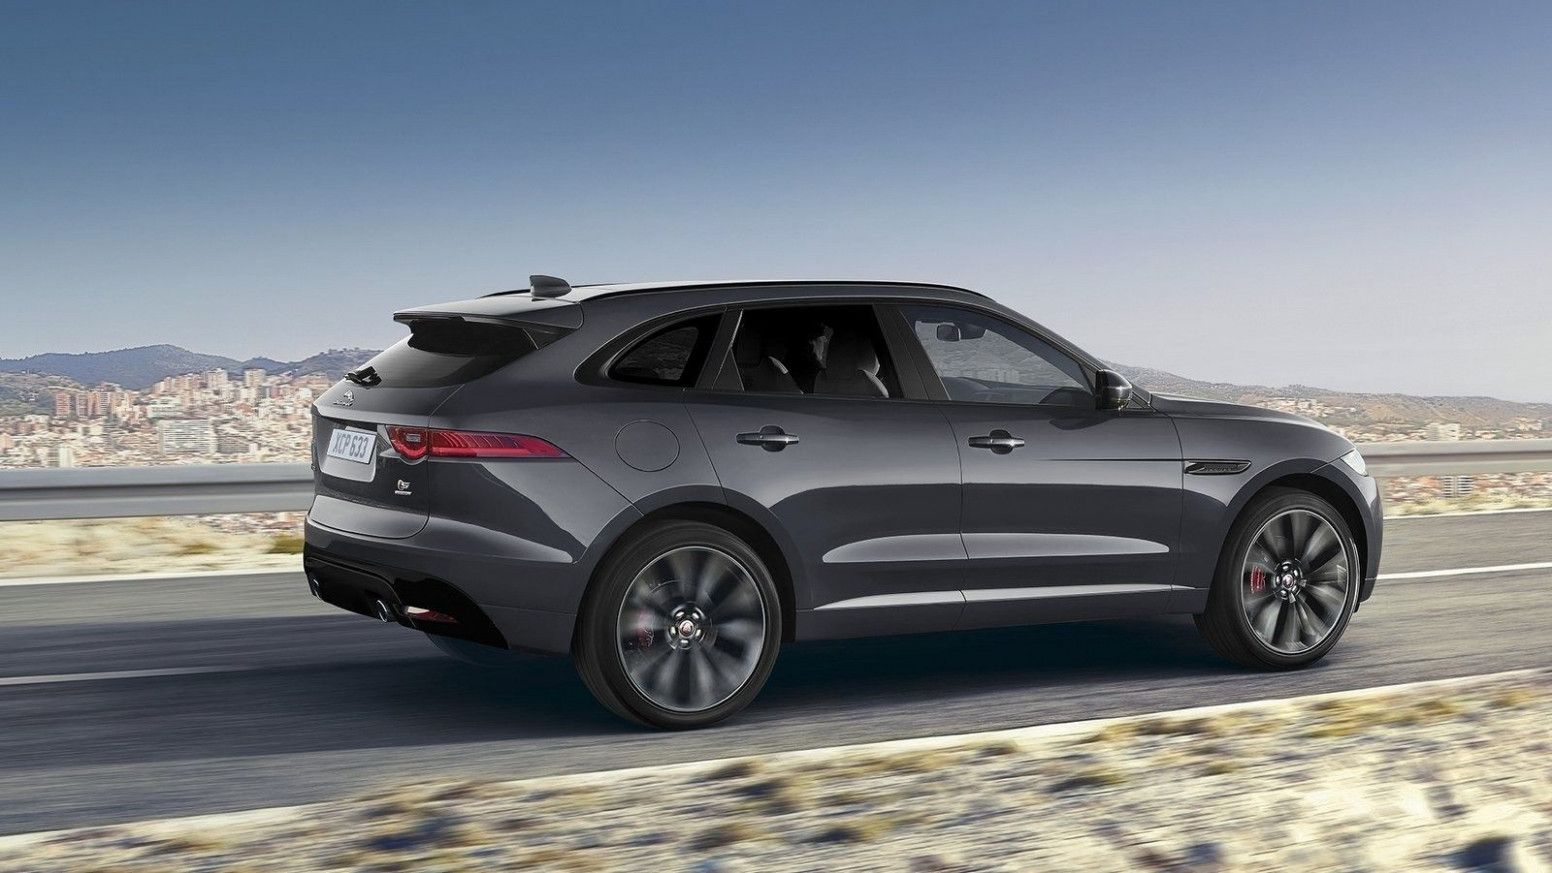 Pin By Veronica Leal On Random In 2020 Jaguar Suv Suv